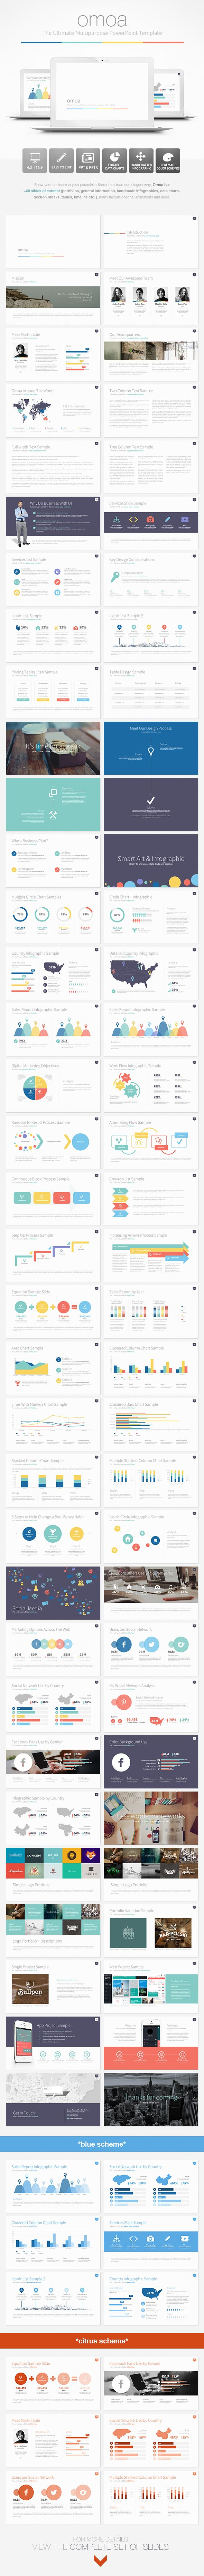 Omoa - Multipurpose PowerPoint Template on Behance